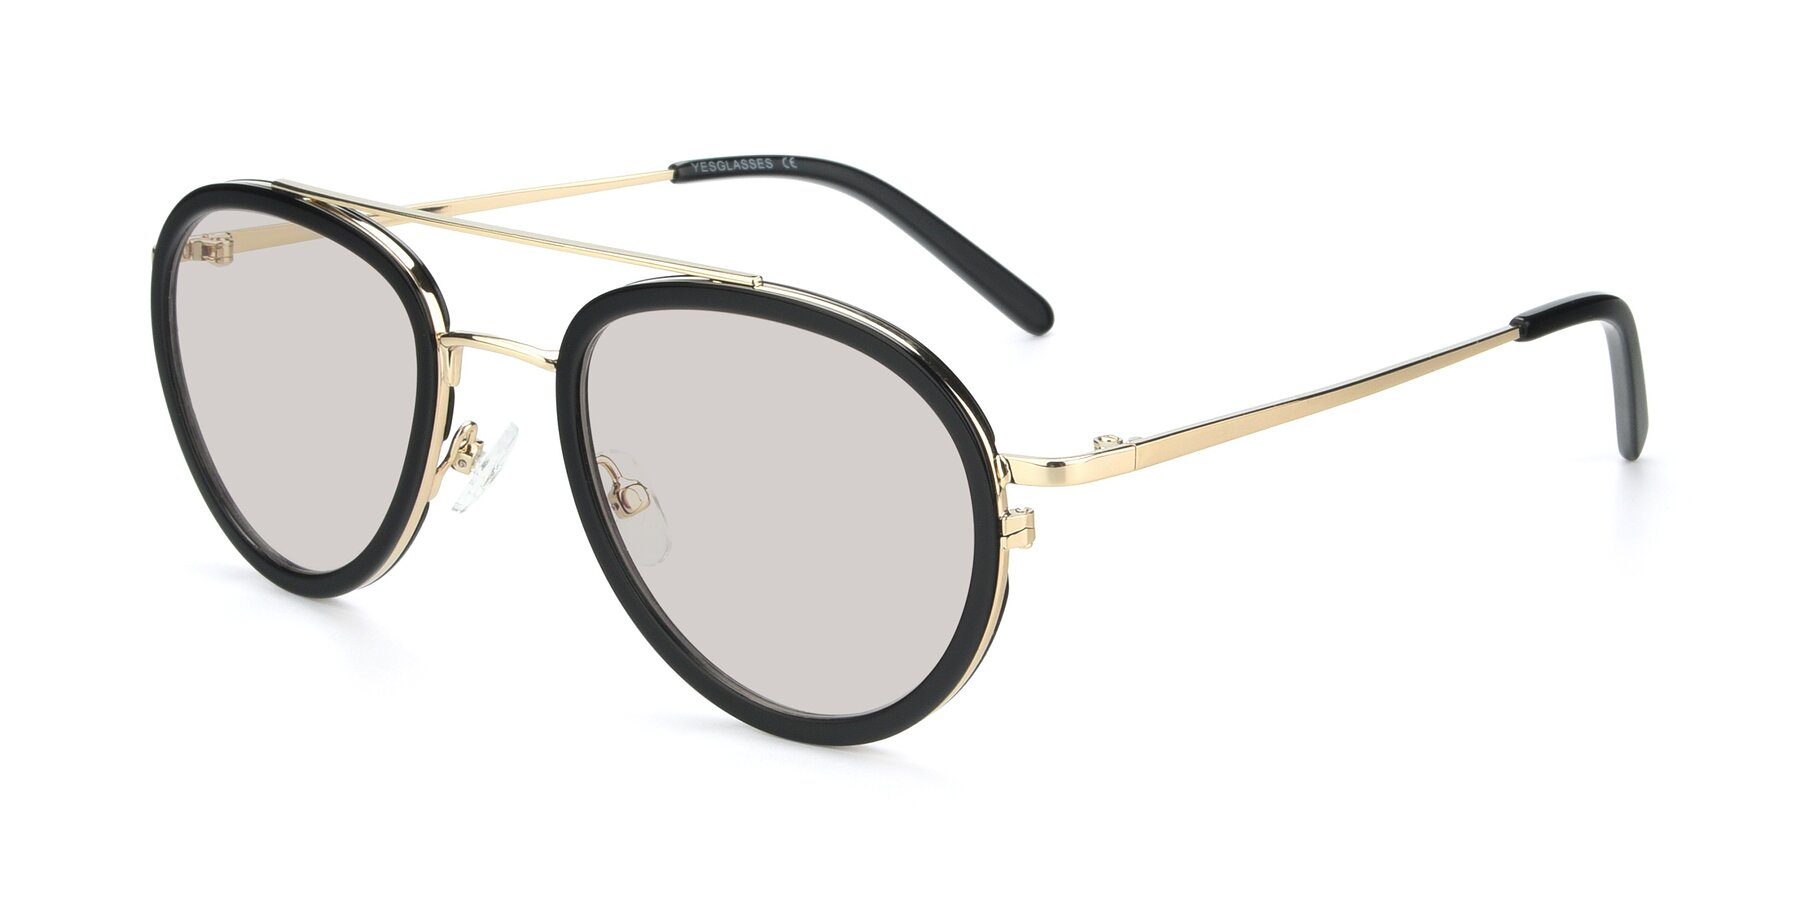 Angle of 9554 in Black-Gold with Light Brown Tinted Lenses